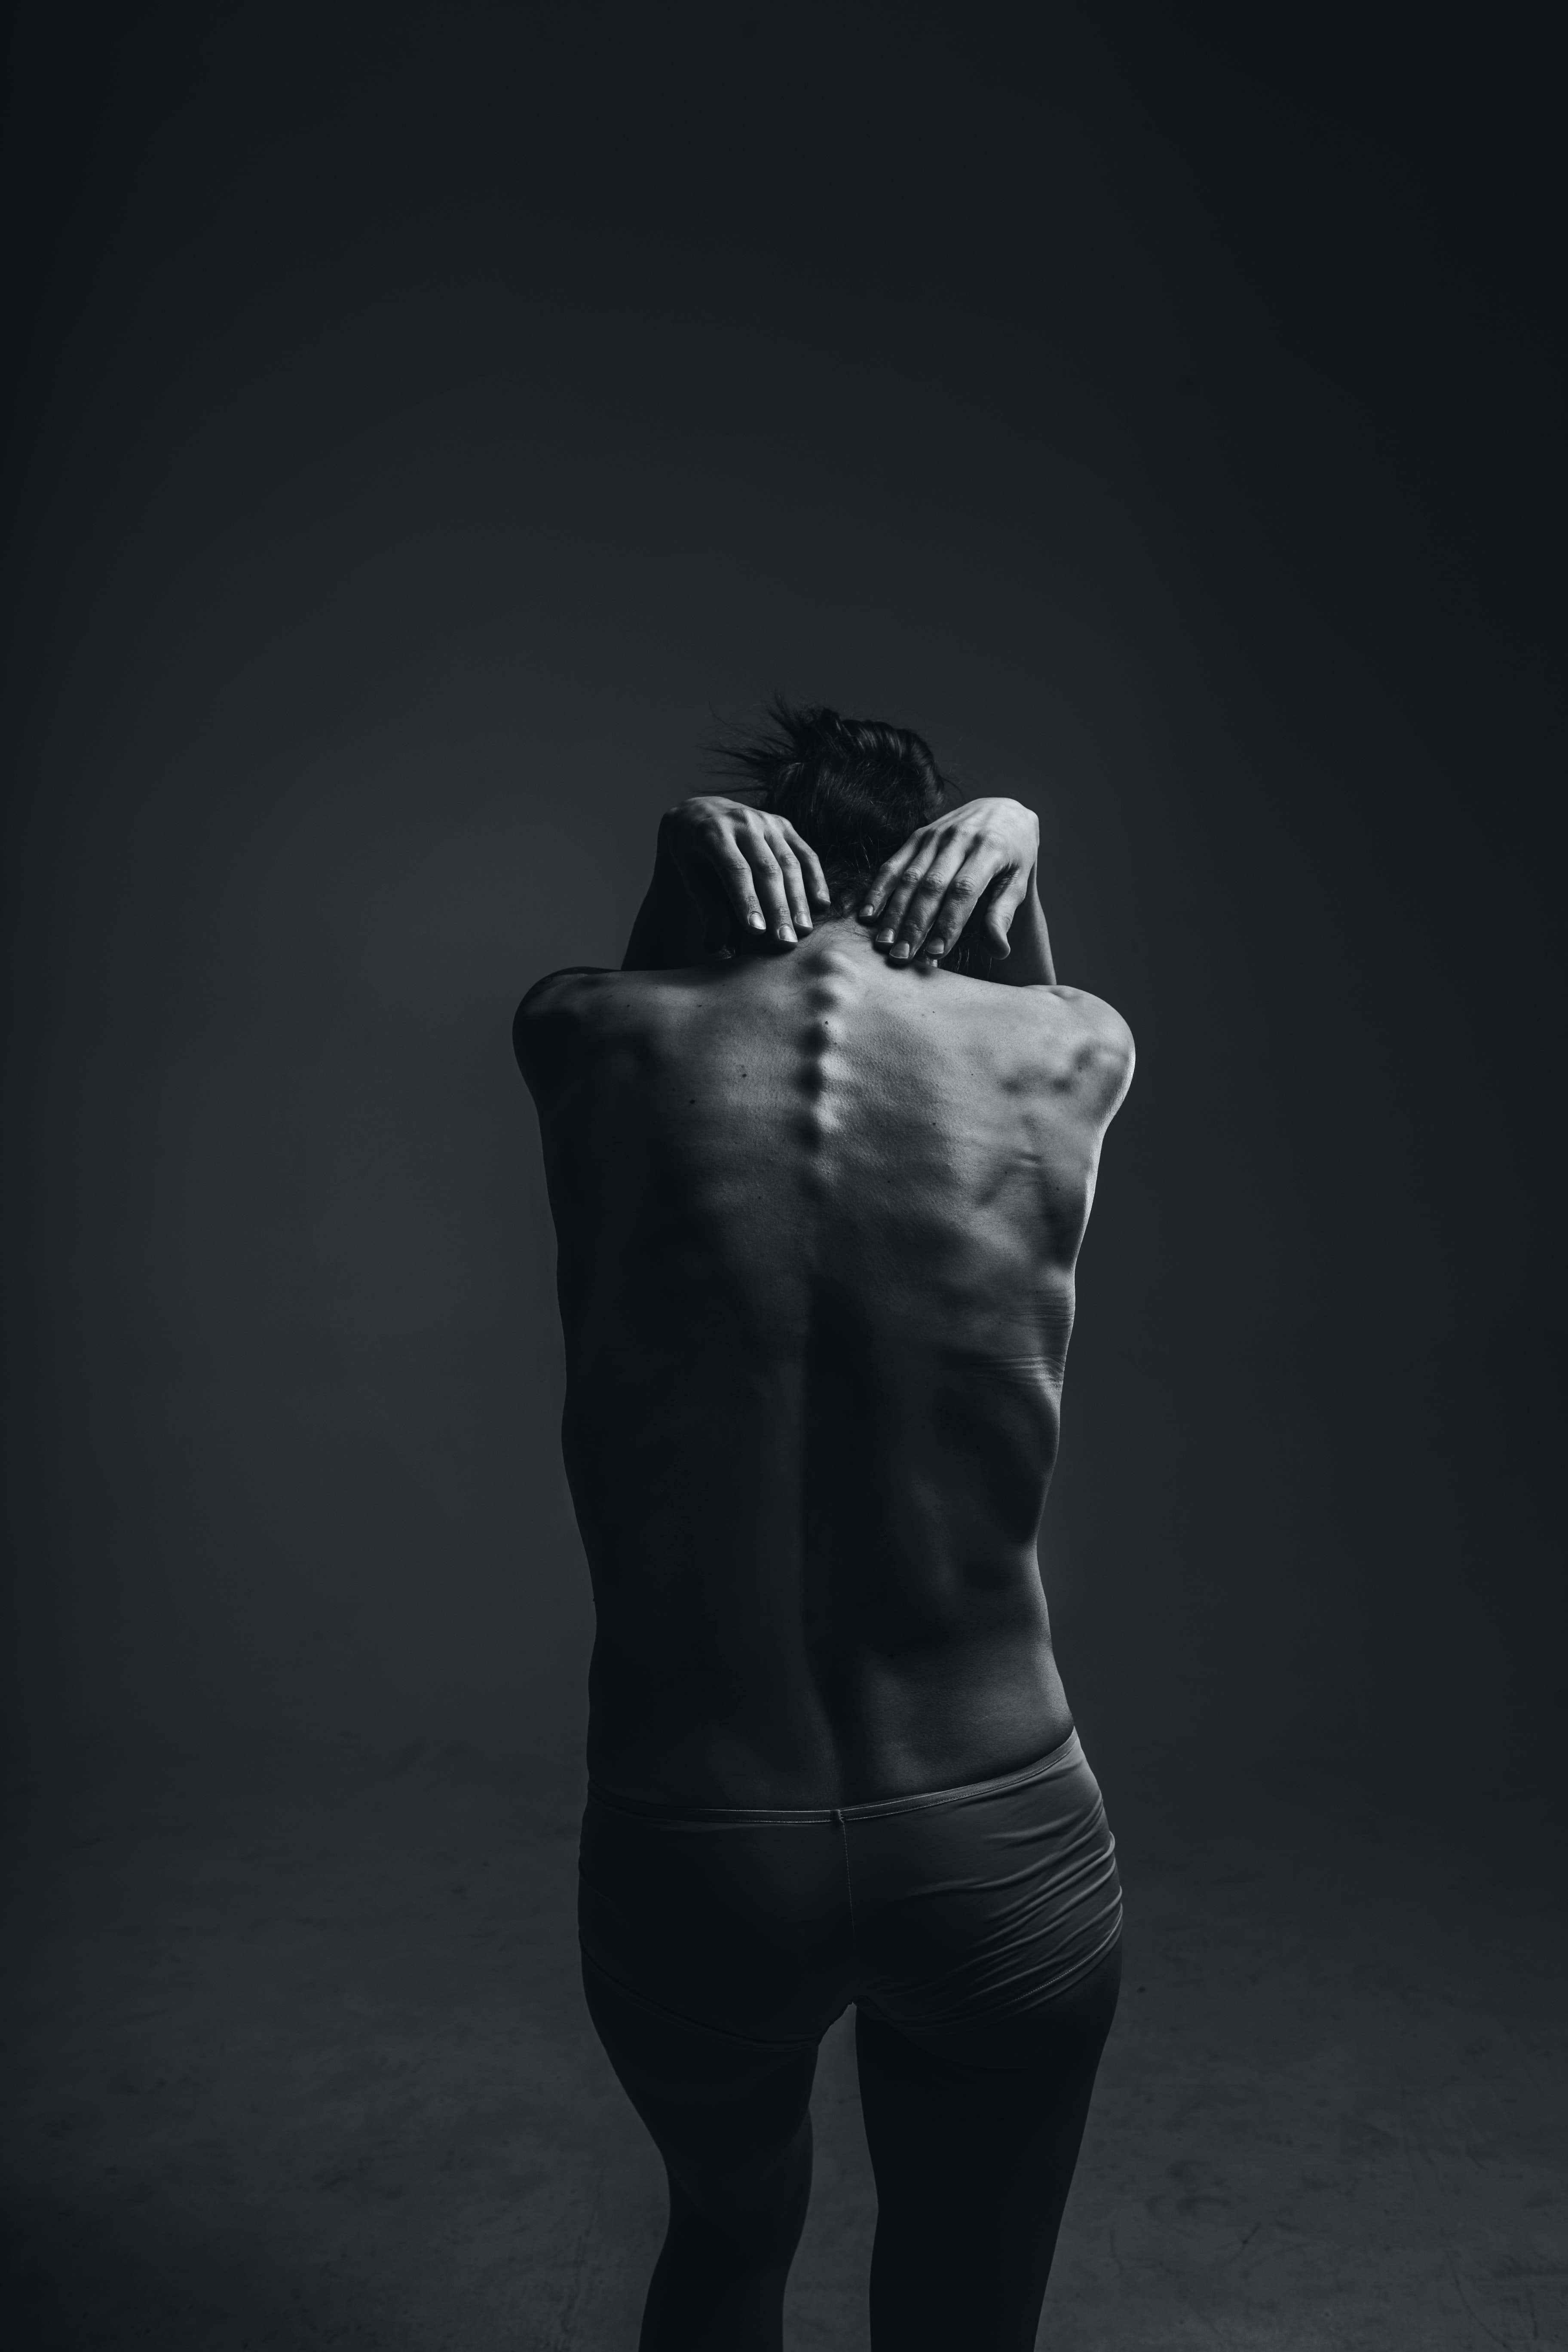 grayscale photograph of person reaching to its back